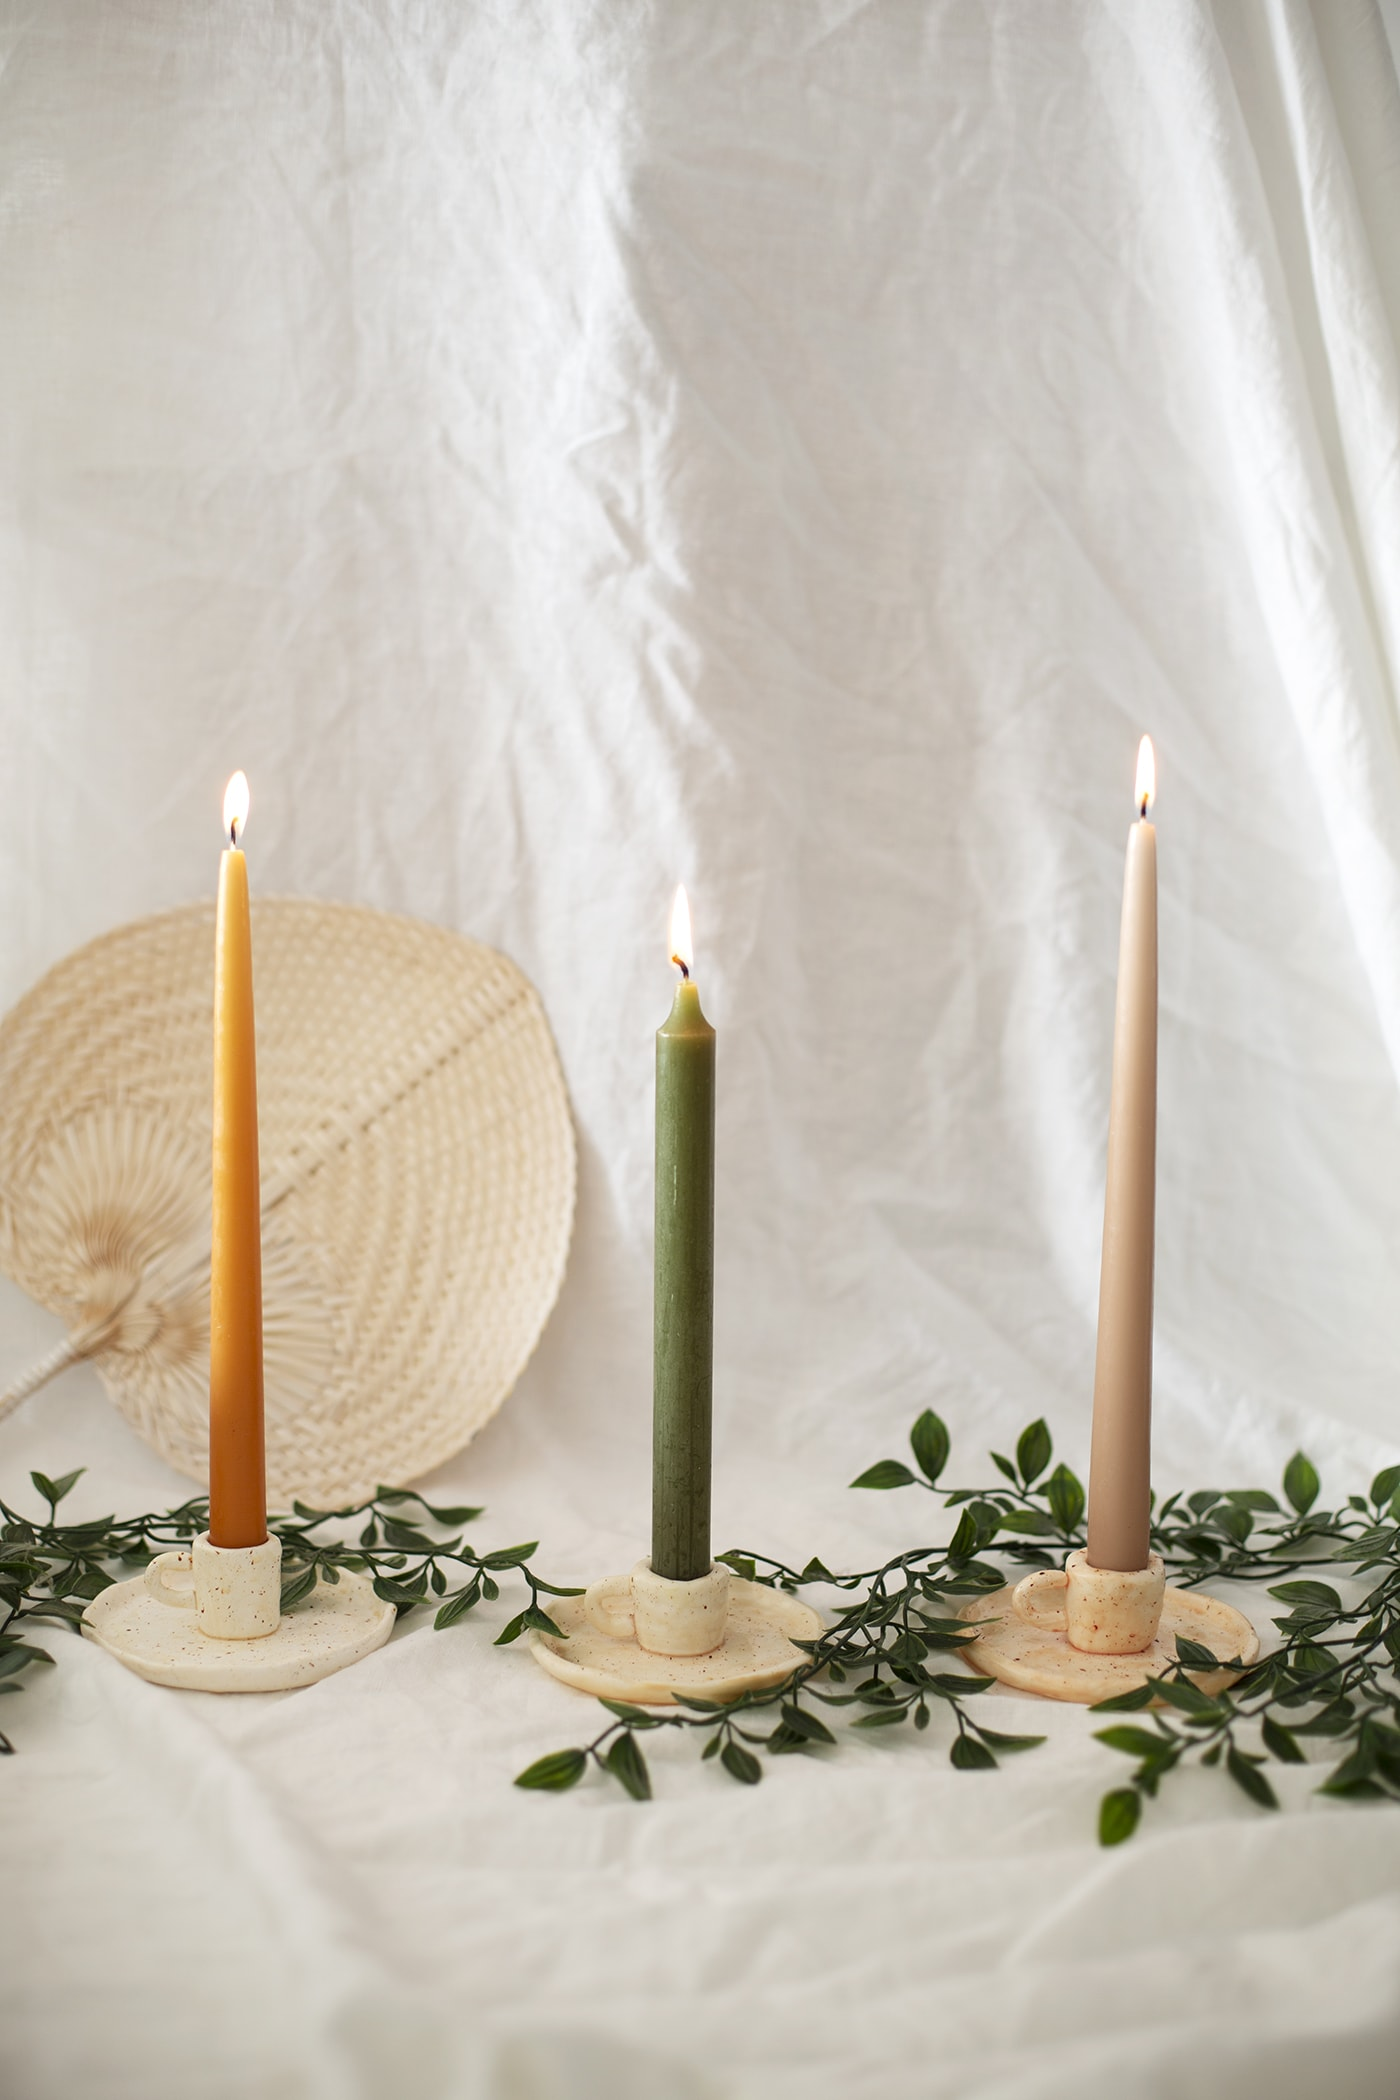 DIY Ceramic-look candleholders